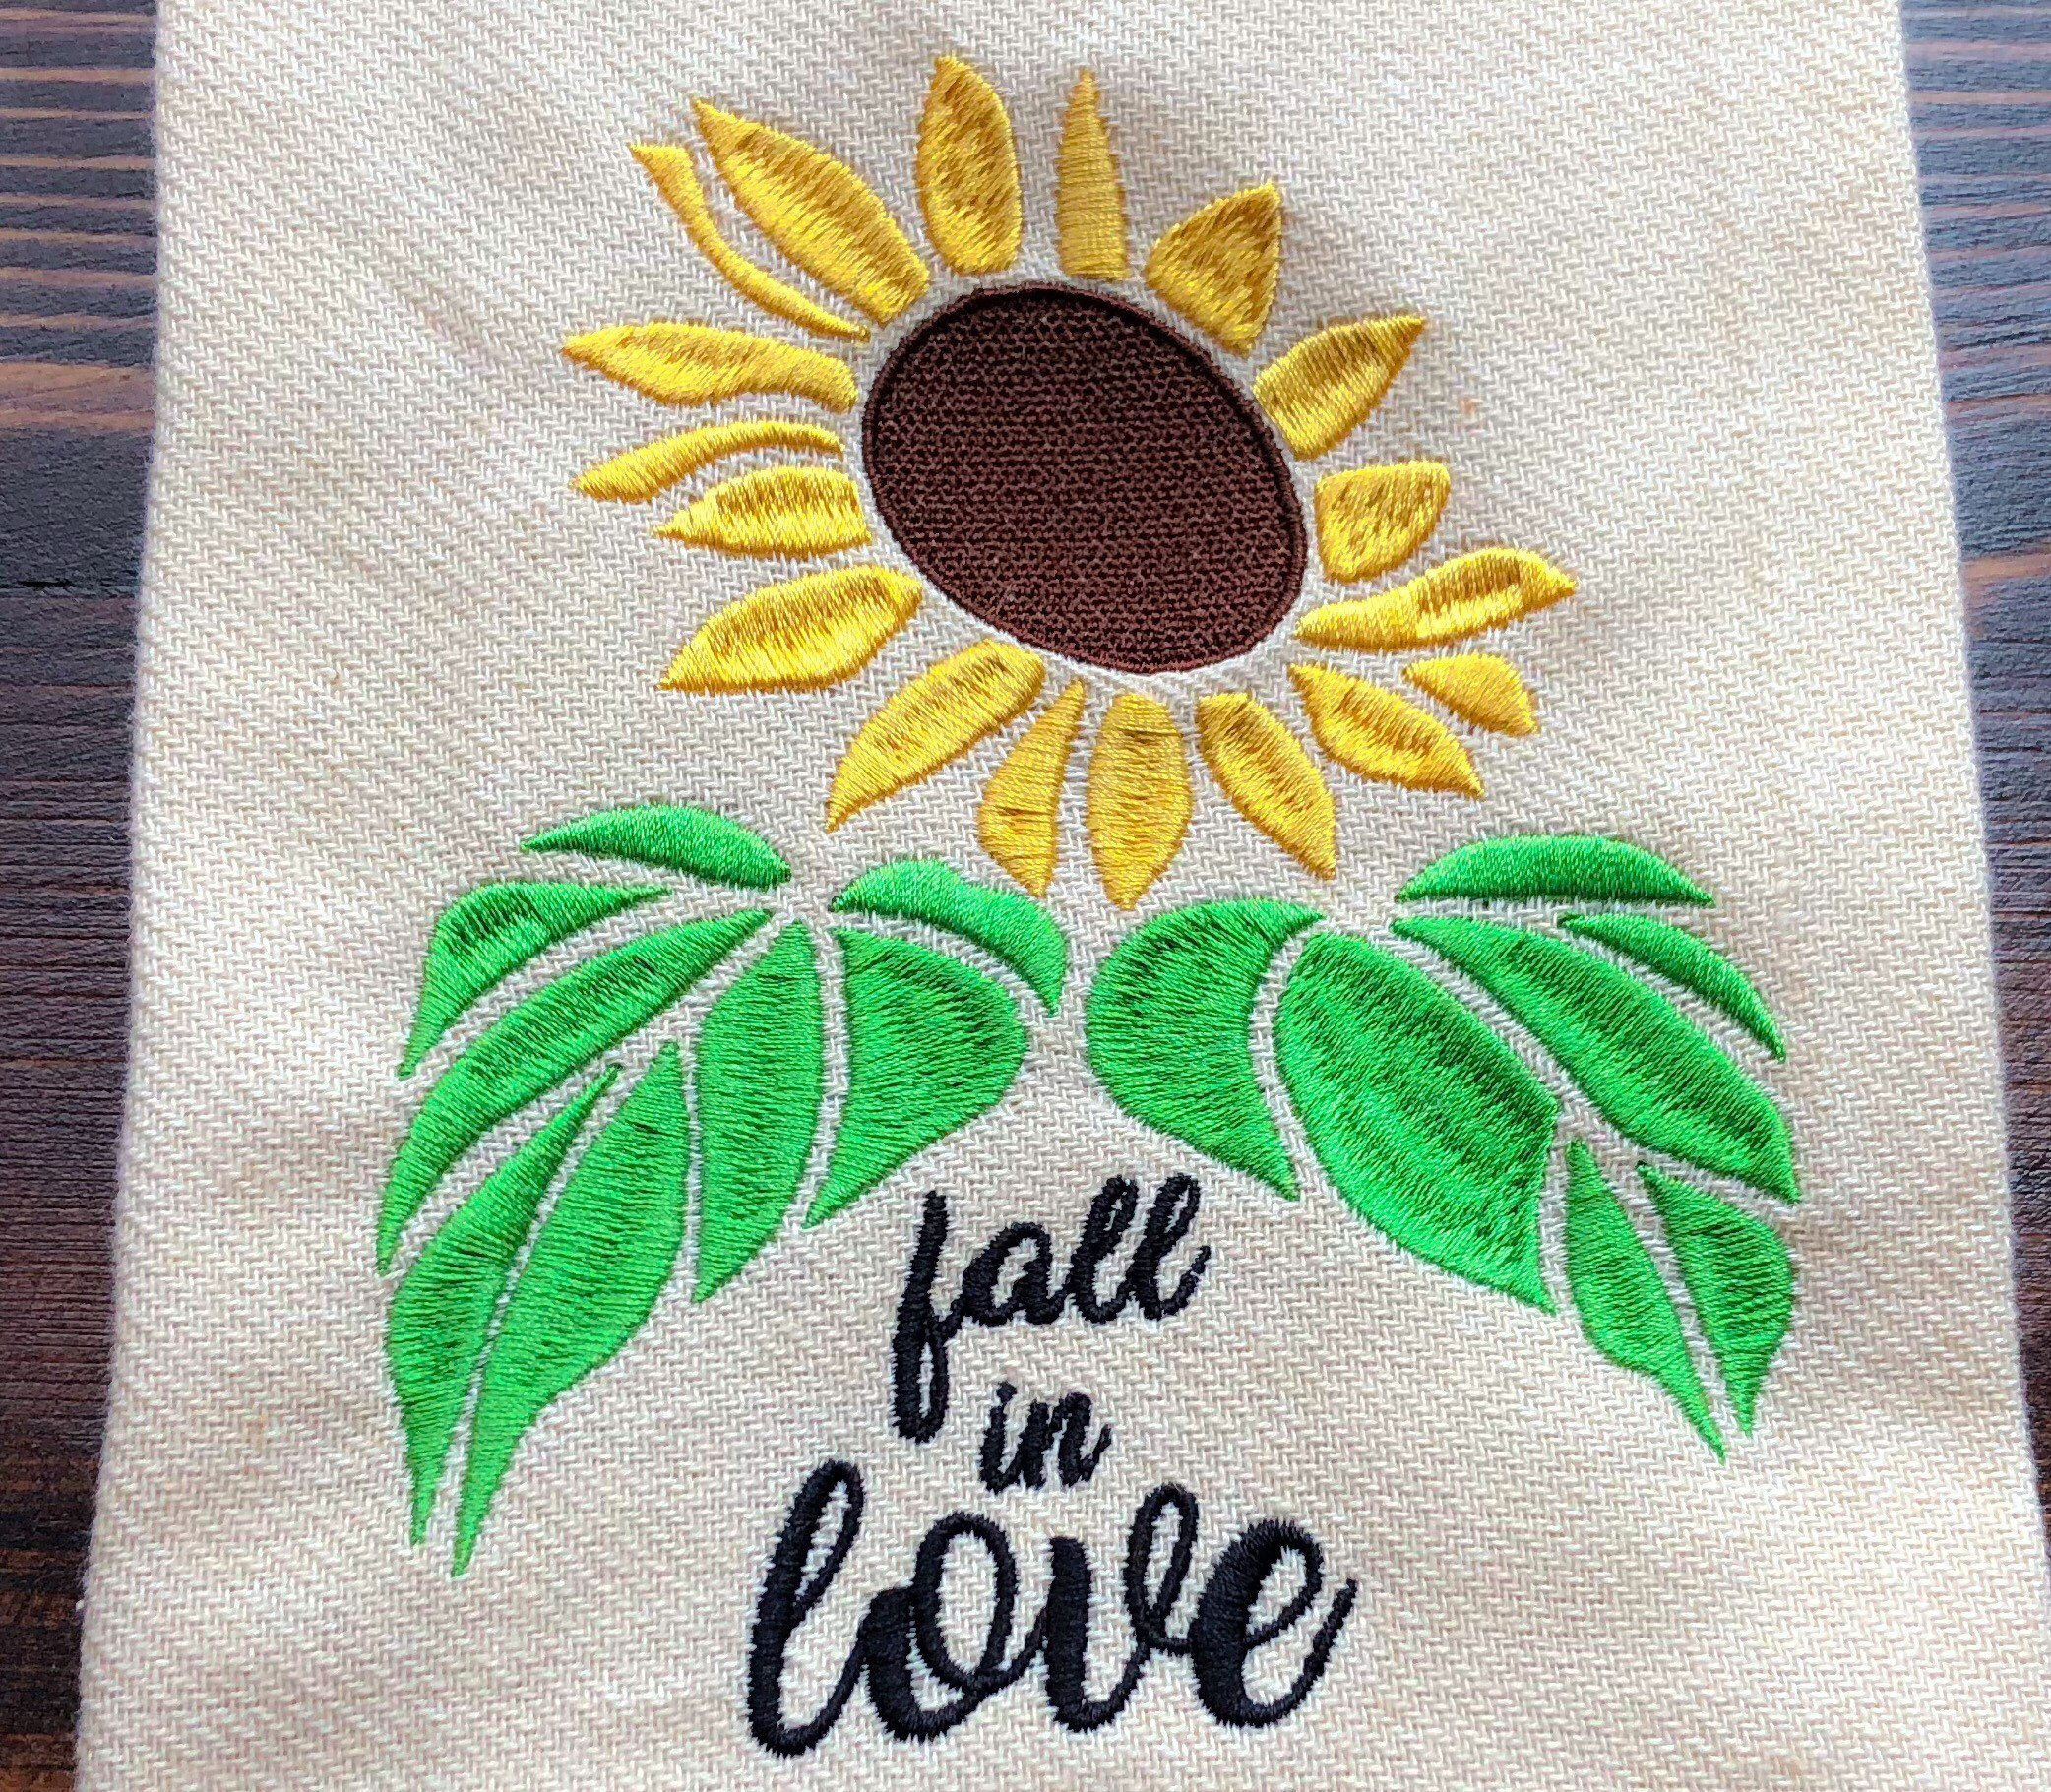 Sunflower Embroidery Pattern Fall In Love Sunflower Embroidery Design Sizes Available 6x10 5x7 Instant Digital Download